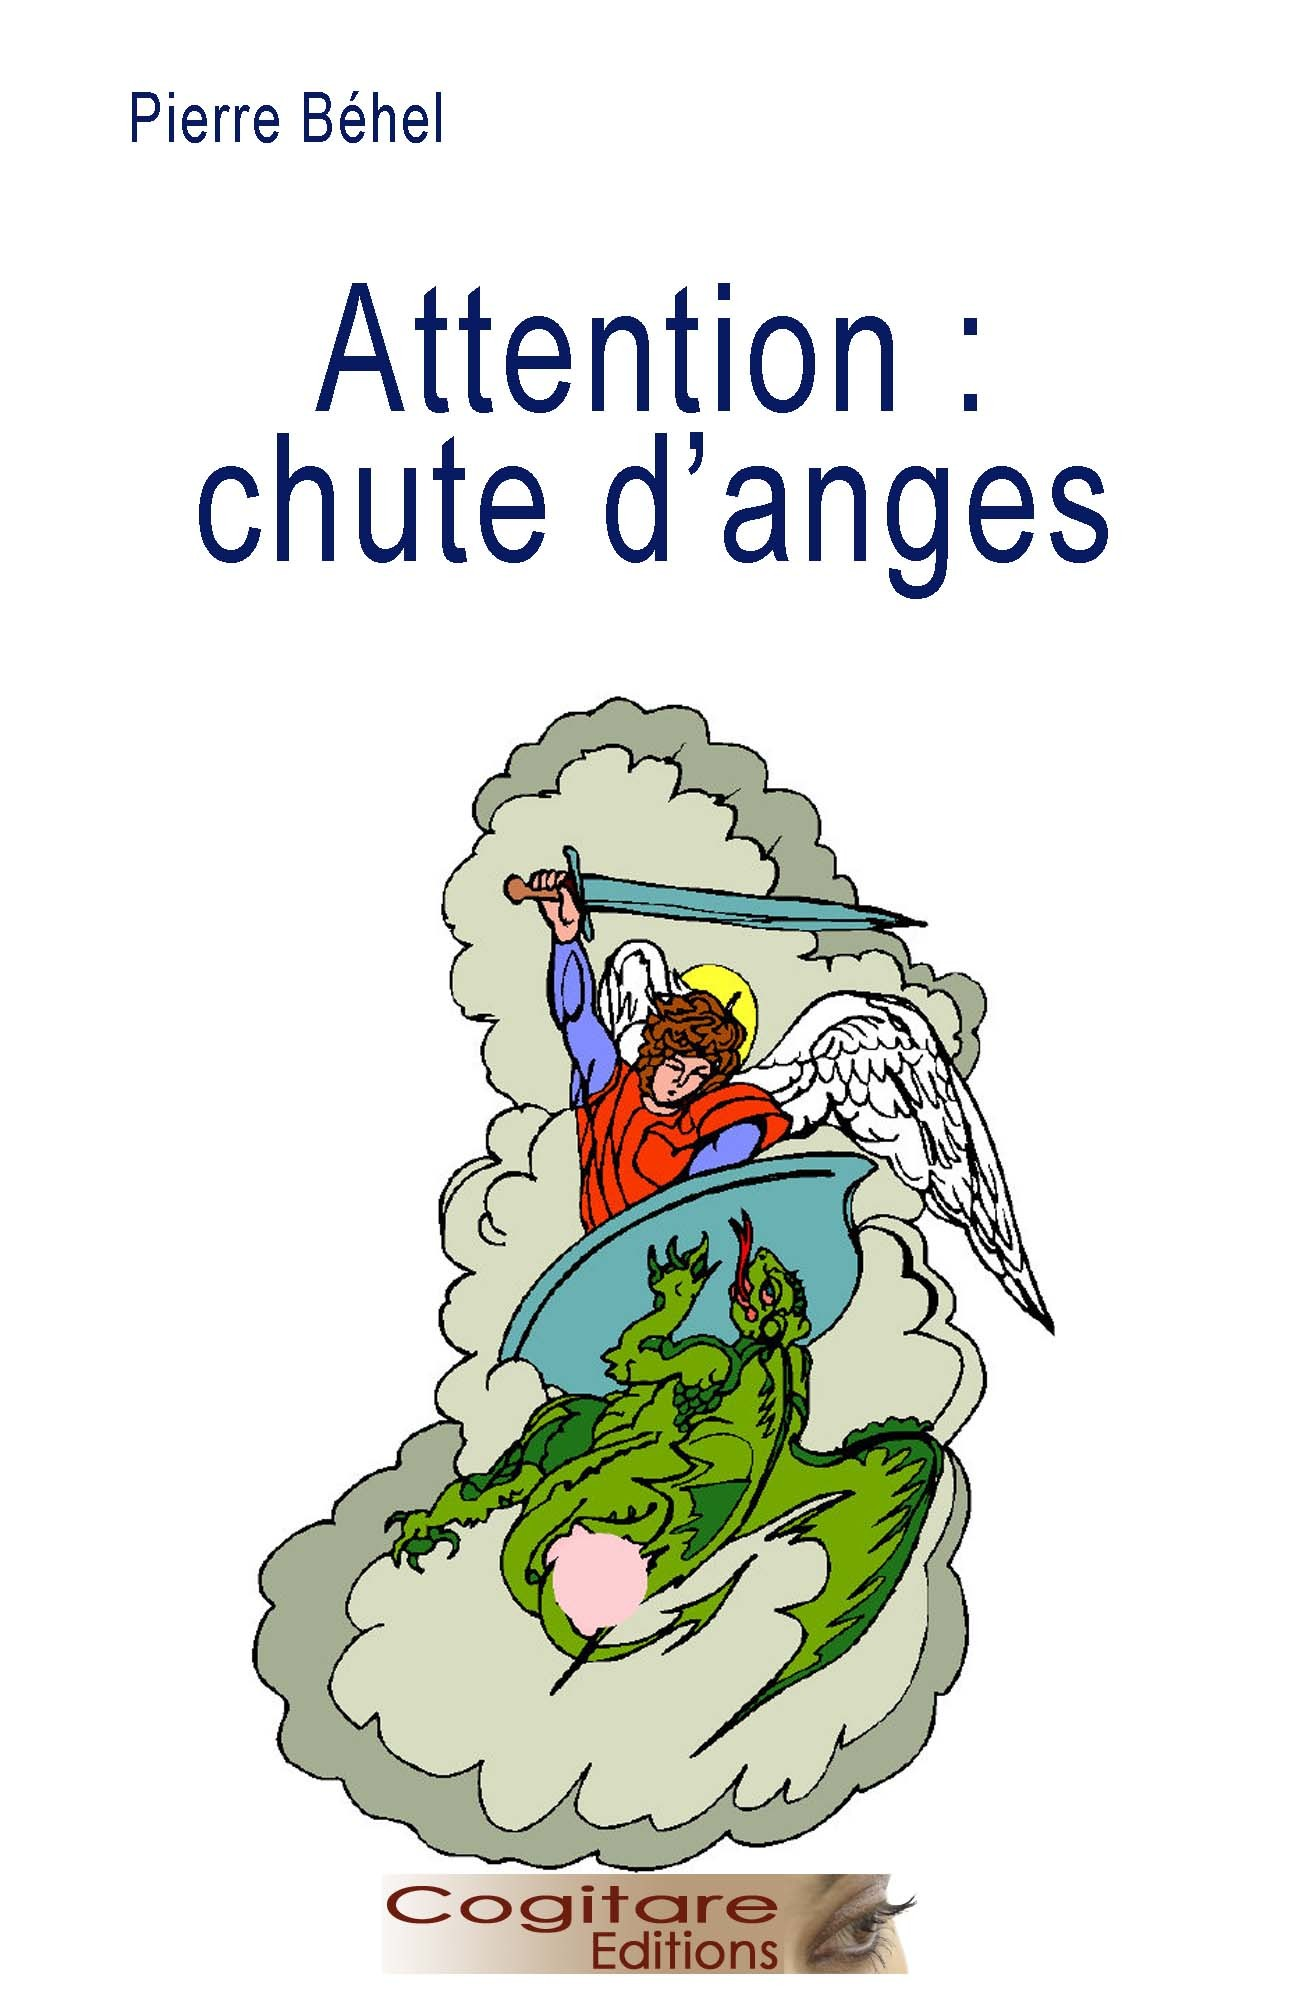 ATTENTION : CHUTE D'ANGES